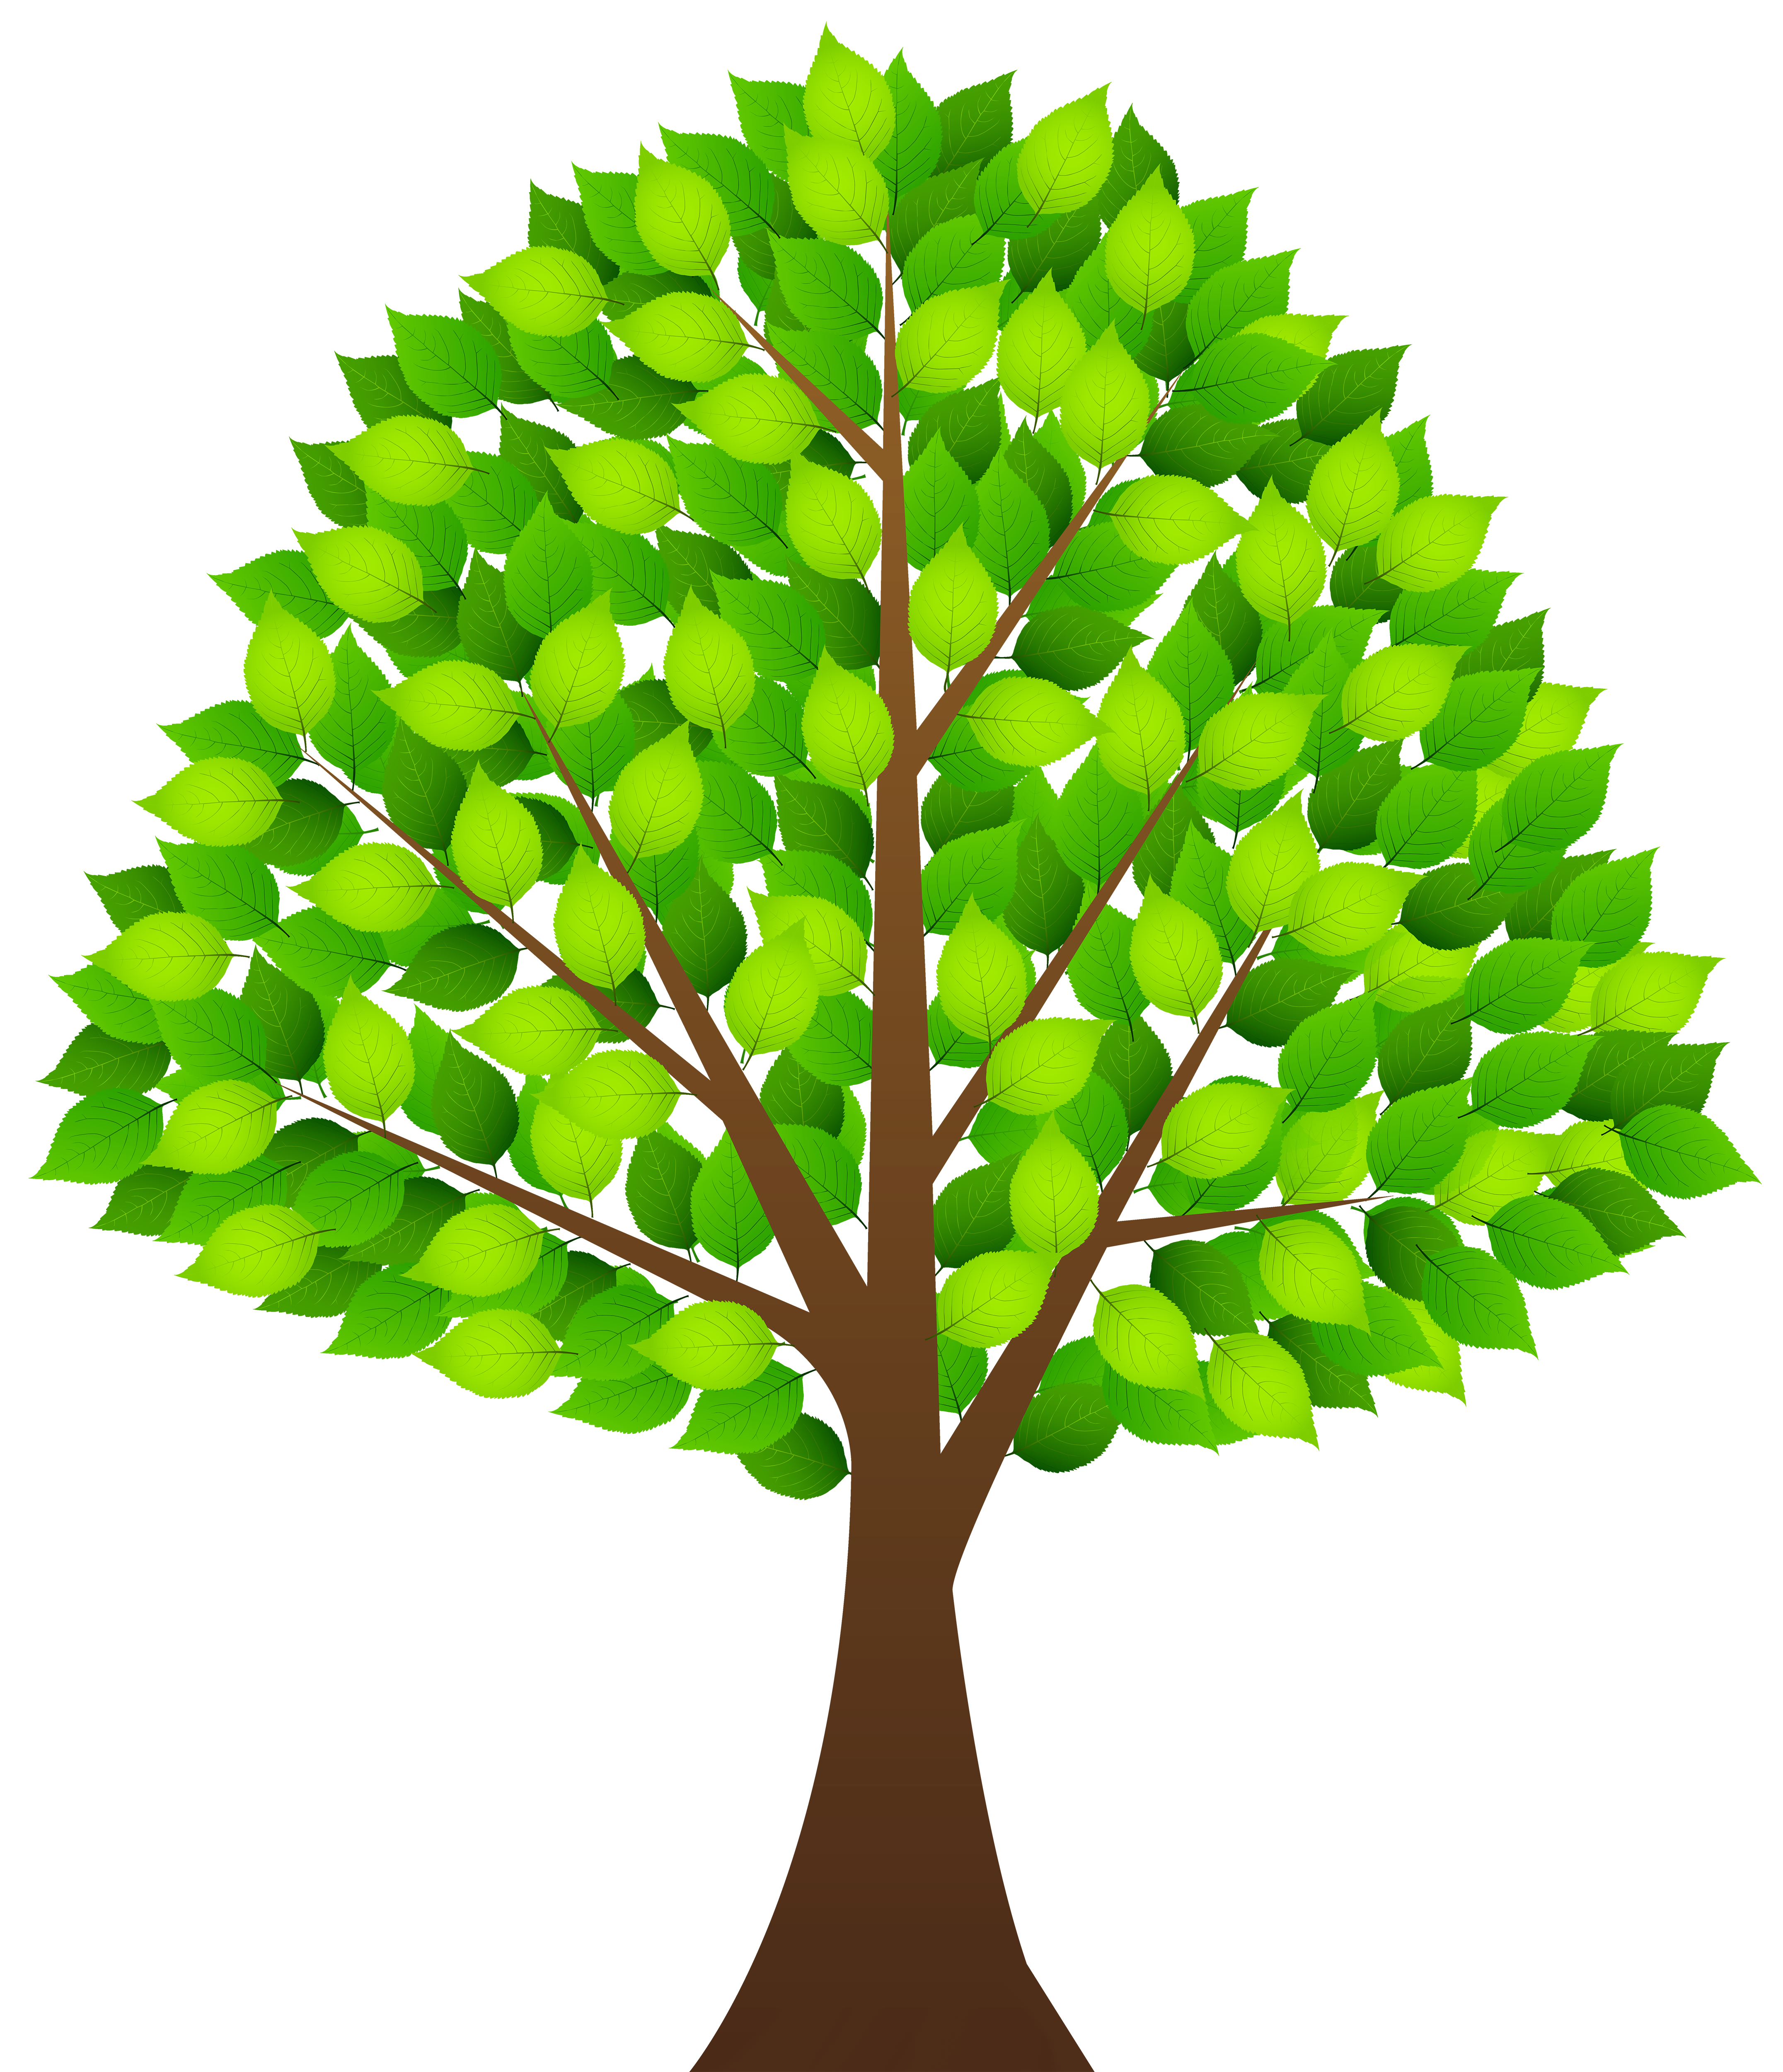 Tree clipart with transparent background image royalty free library Tree with Green Leaves Transparent PNG Clip Art Image | Gallery ... image royalty free library